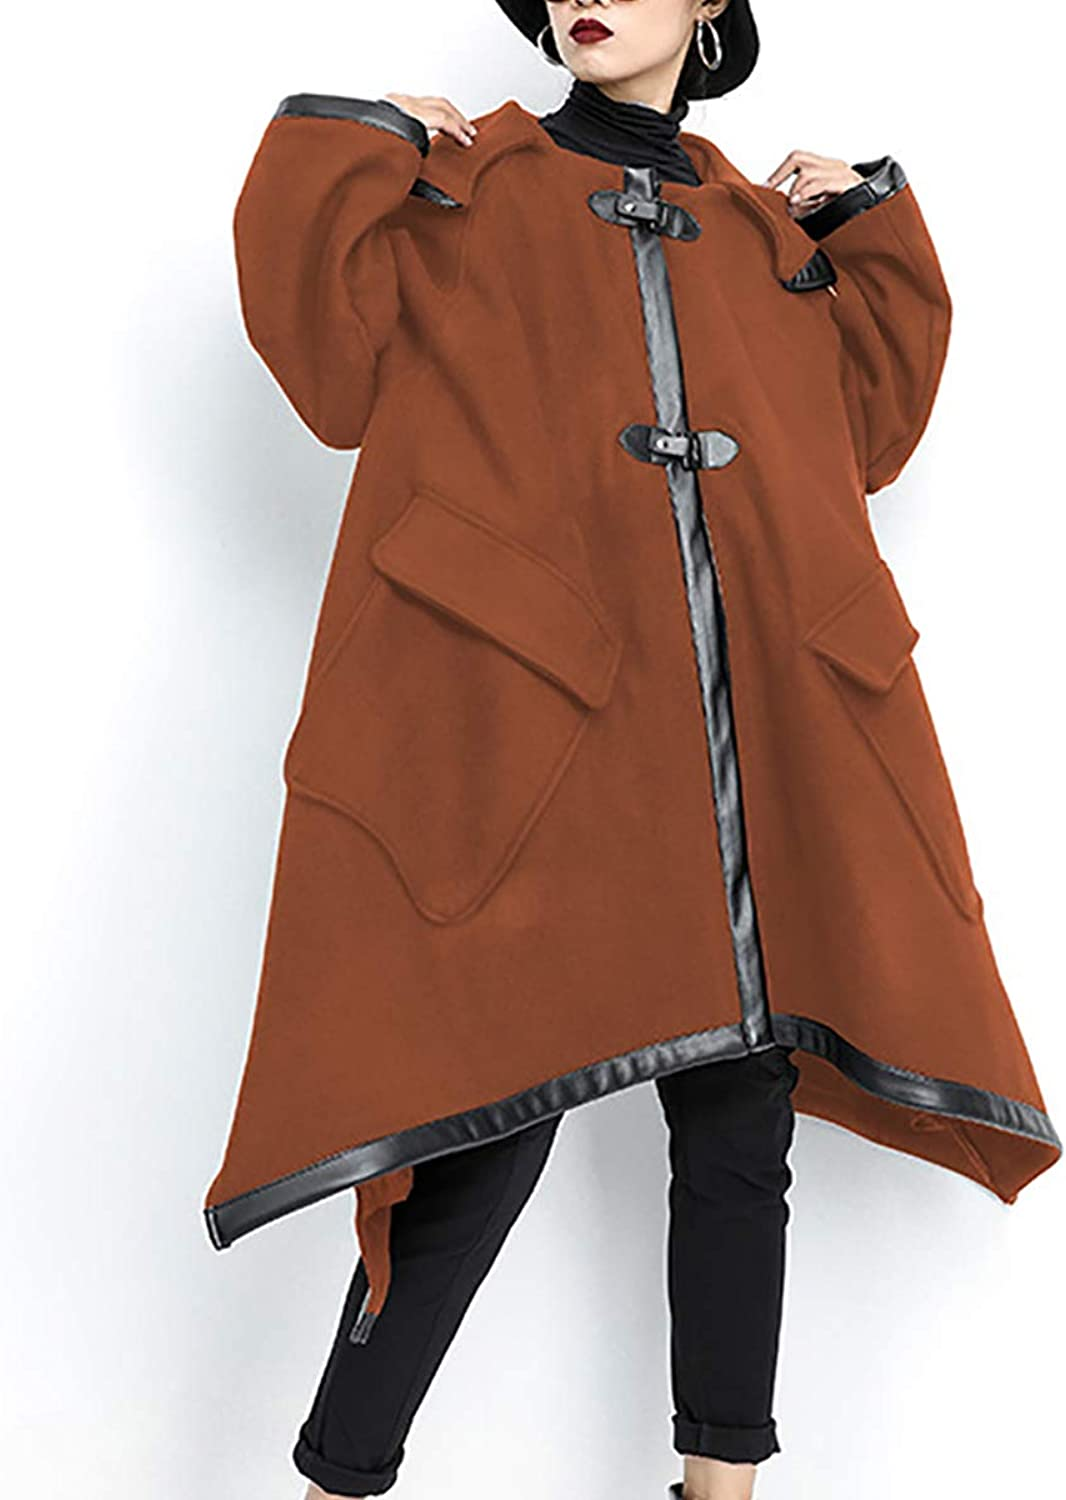 Women's Woolen Long Coat Winter Warm Loose Cardigan Irregular Hooded Cloak,Brown